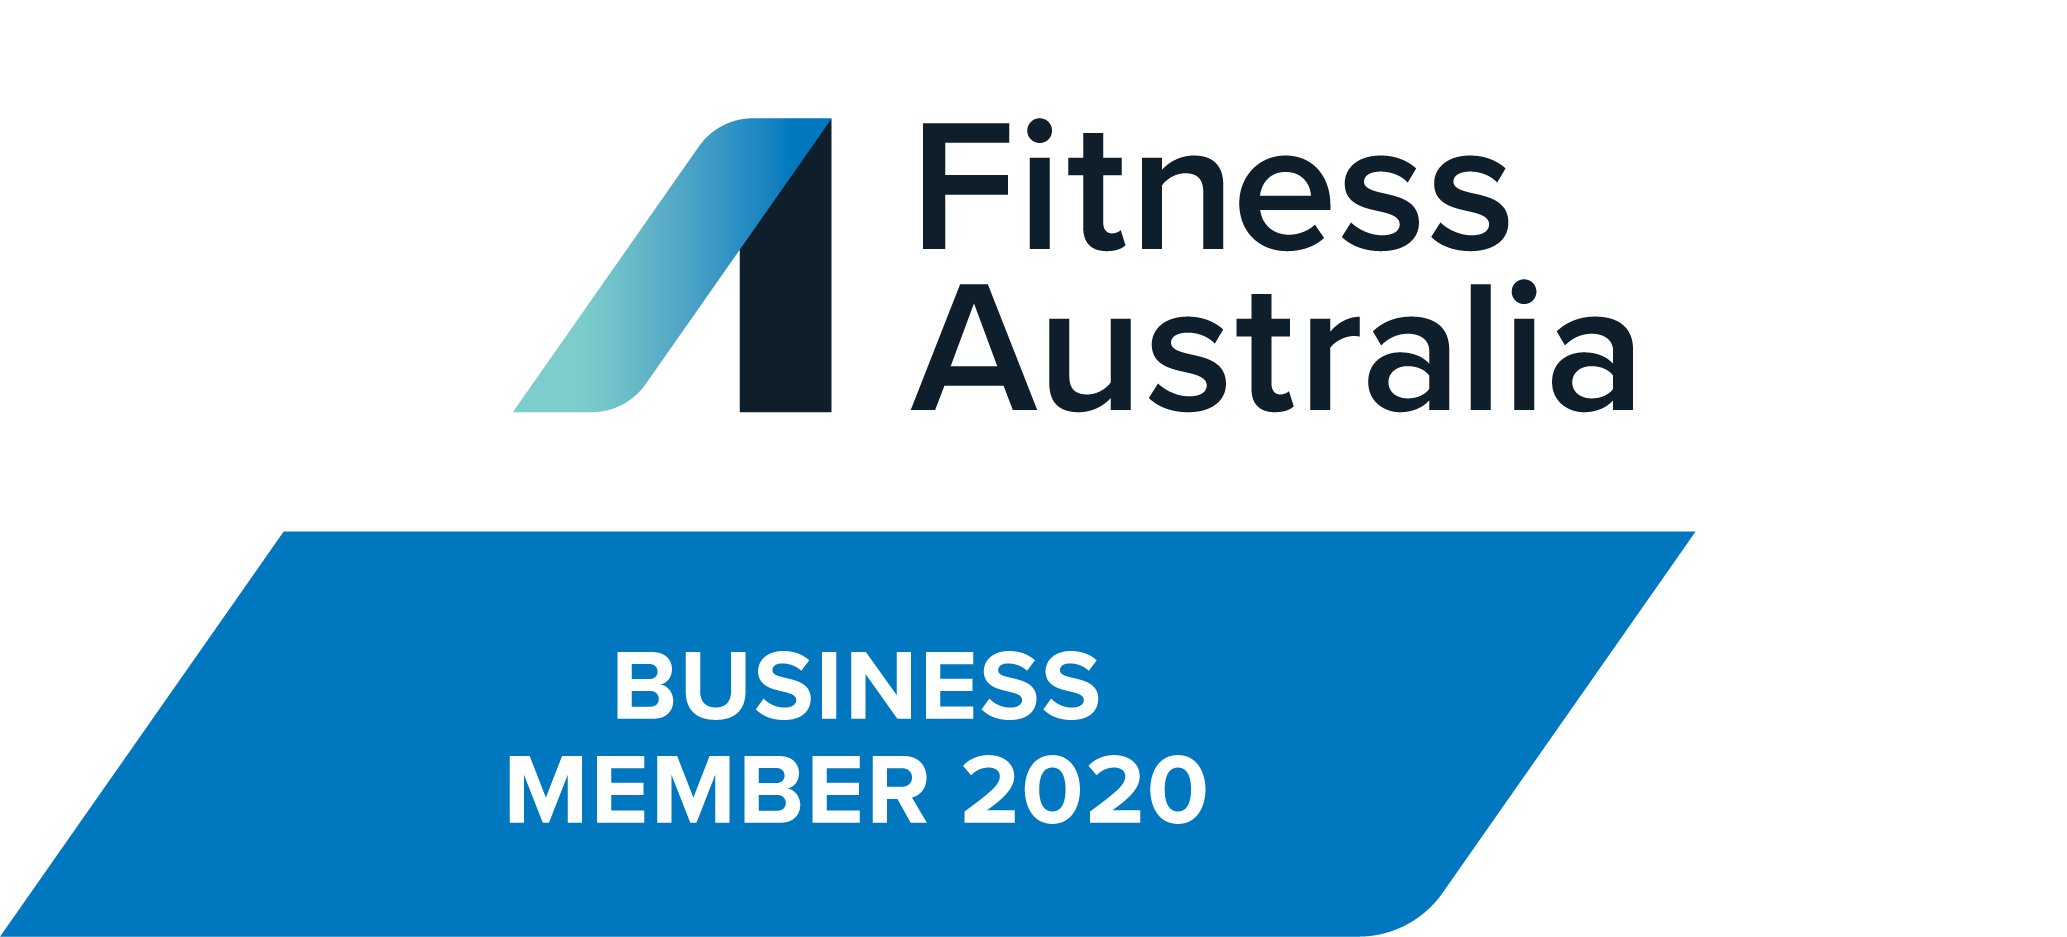 Fitness Australia - Business Member 2020